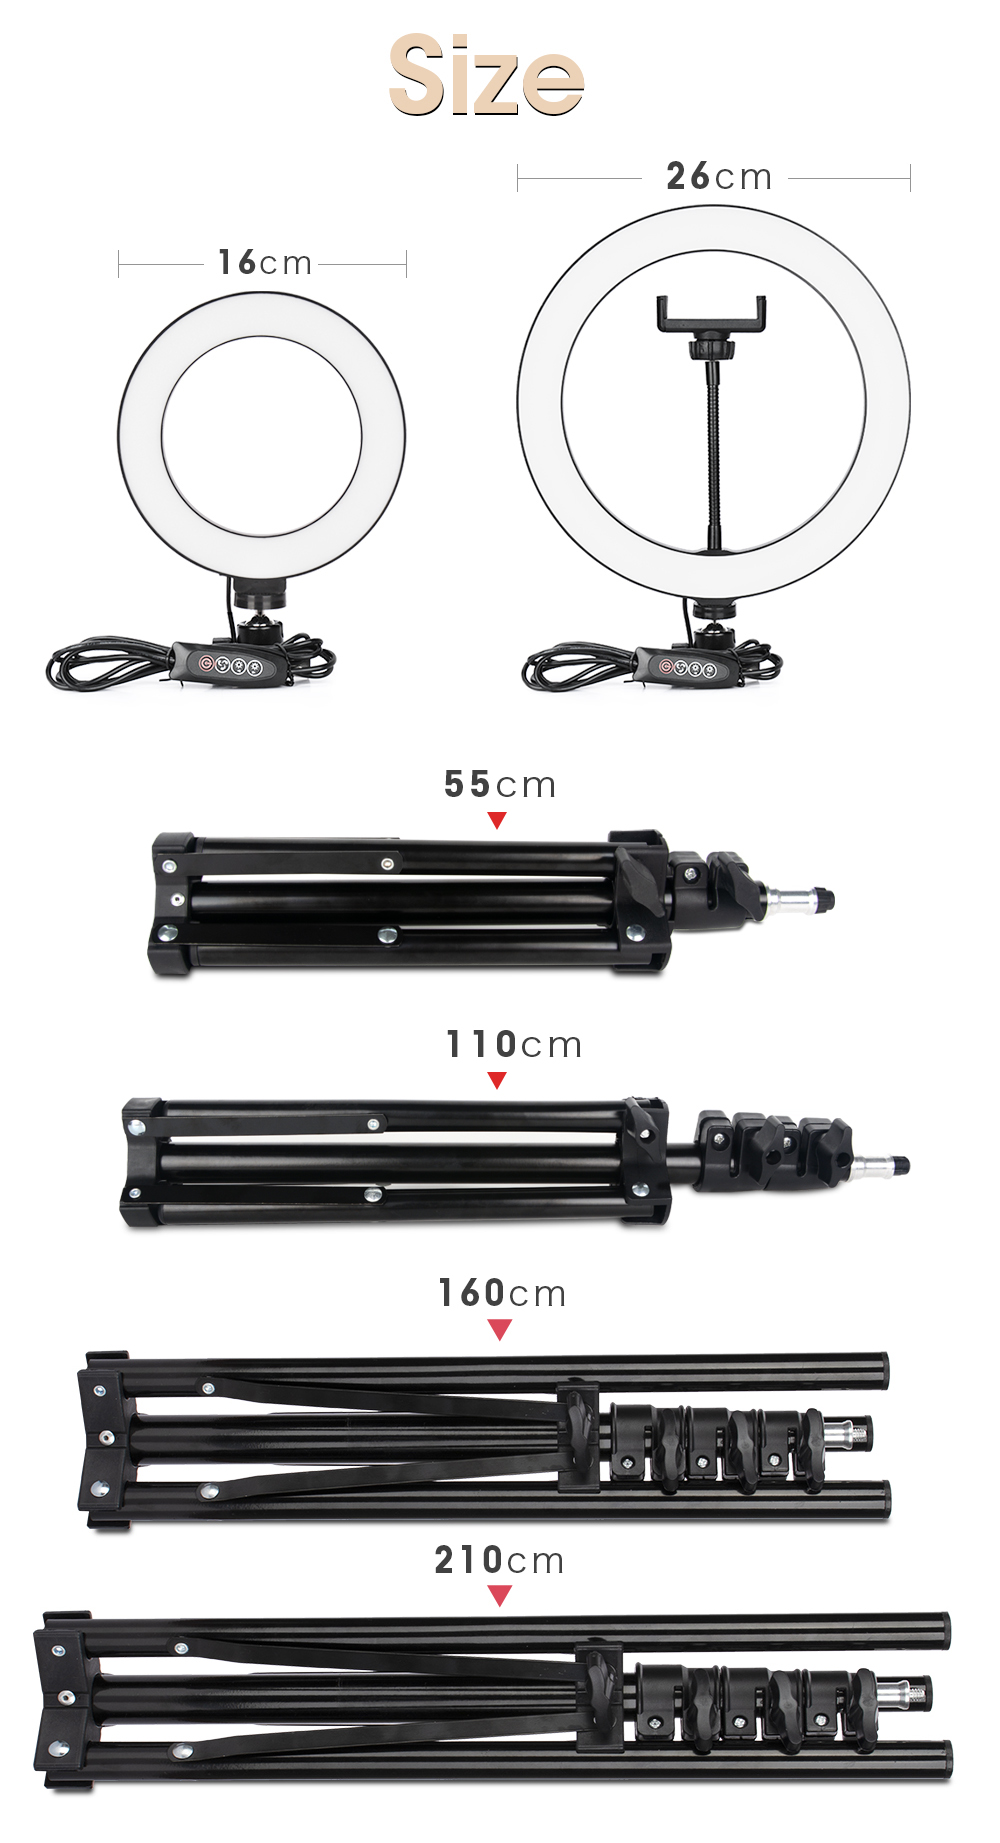 He6be76737d5e48da9e778bdcc807a501I LED Ring Light Photography Lighting Selfie Lamp USB Dimmable With Tripod For Youtube Photo Studio Makeup Video Live